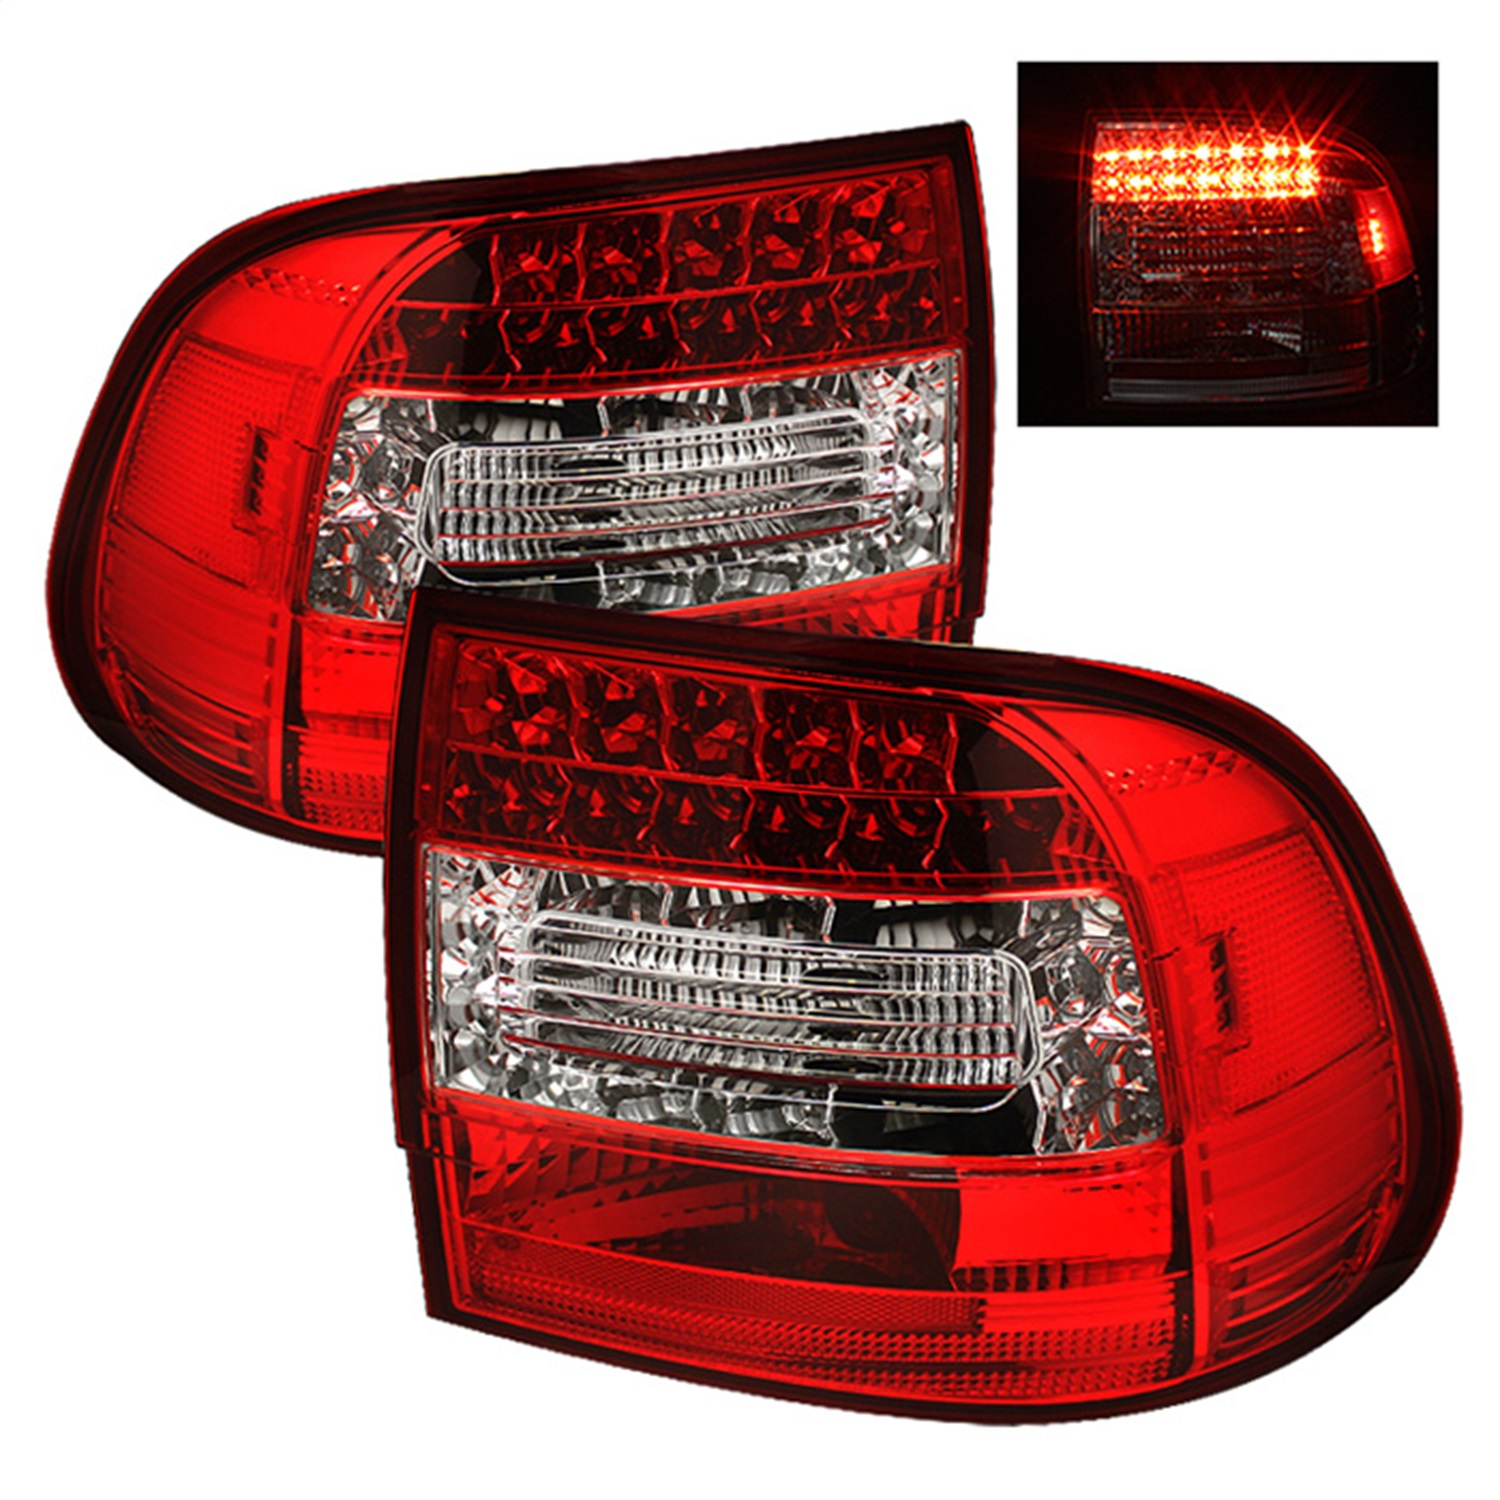 Spyder Auto 5007087 LED Tail Lights Fits 03-06 Cayenne